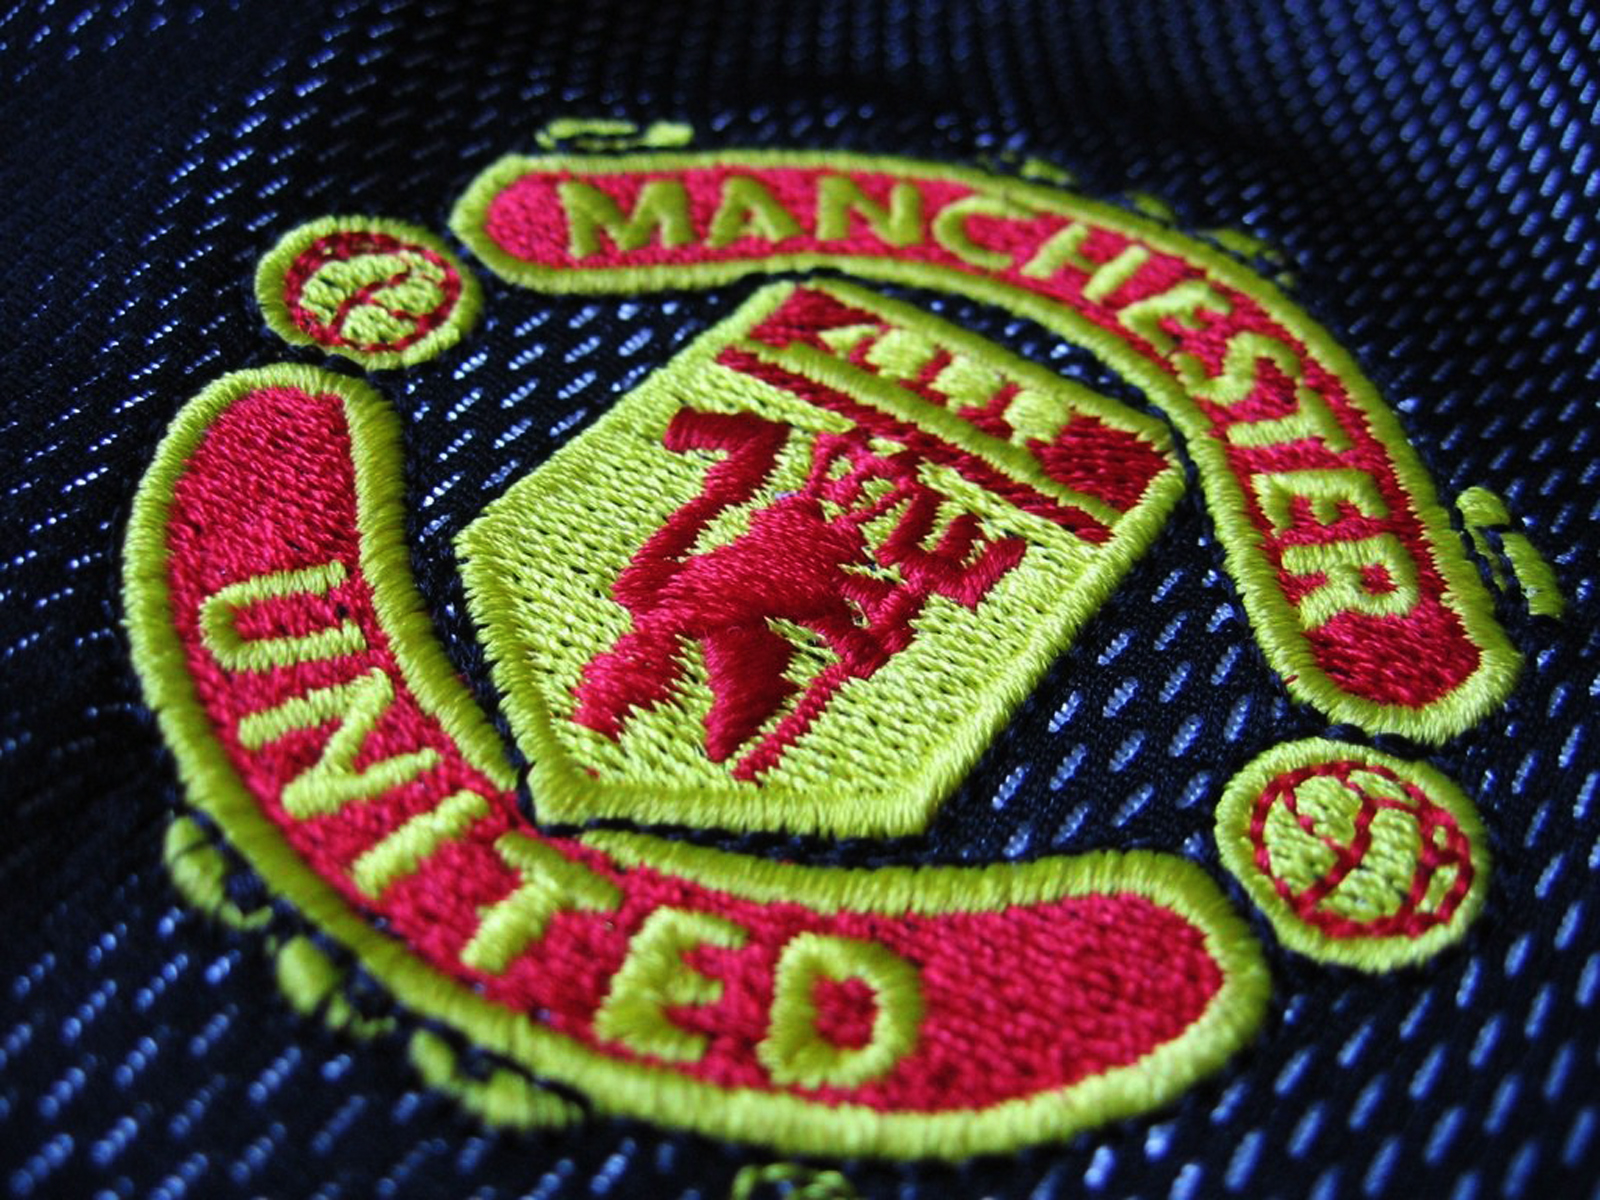 Wallpapers Hd For Mac Manchester United Logo Wallpapers